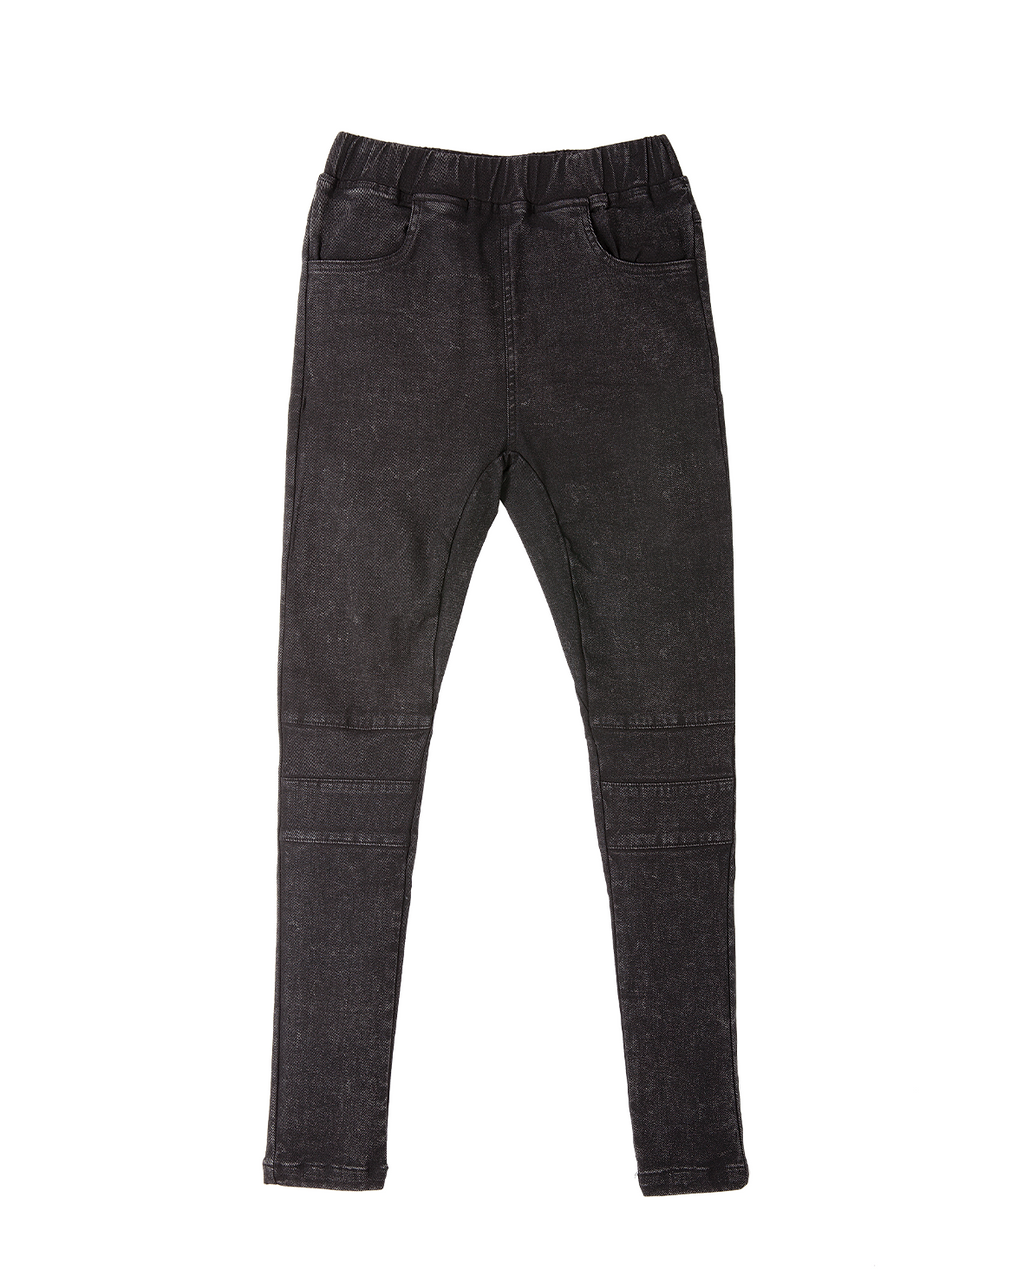 Band of Boys - Super Stretch Skinny Jean - Vintage Black